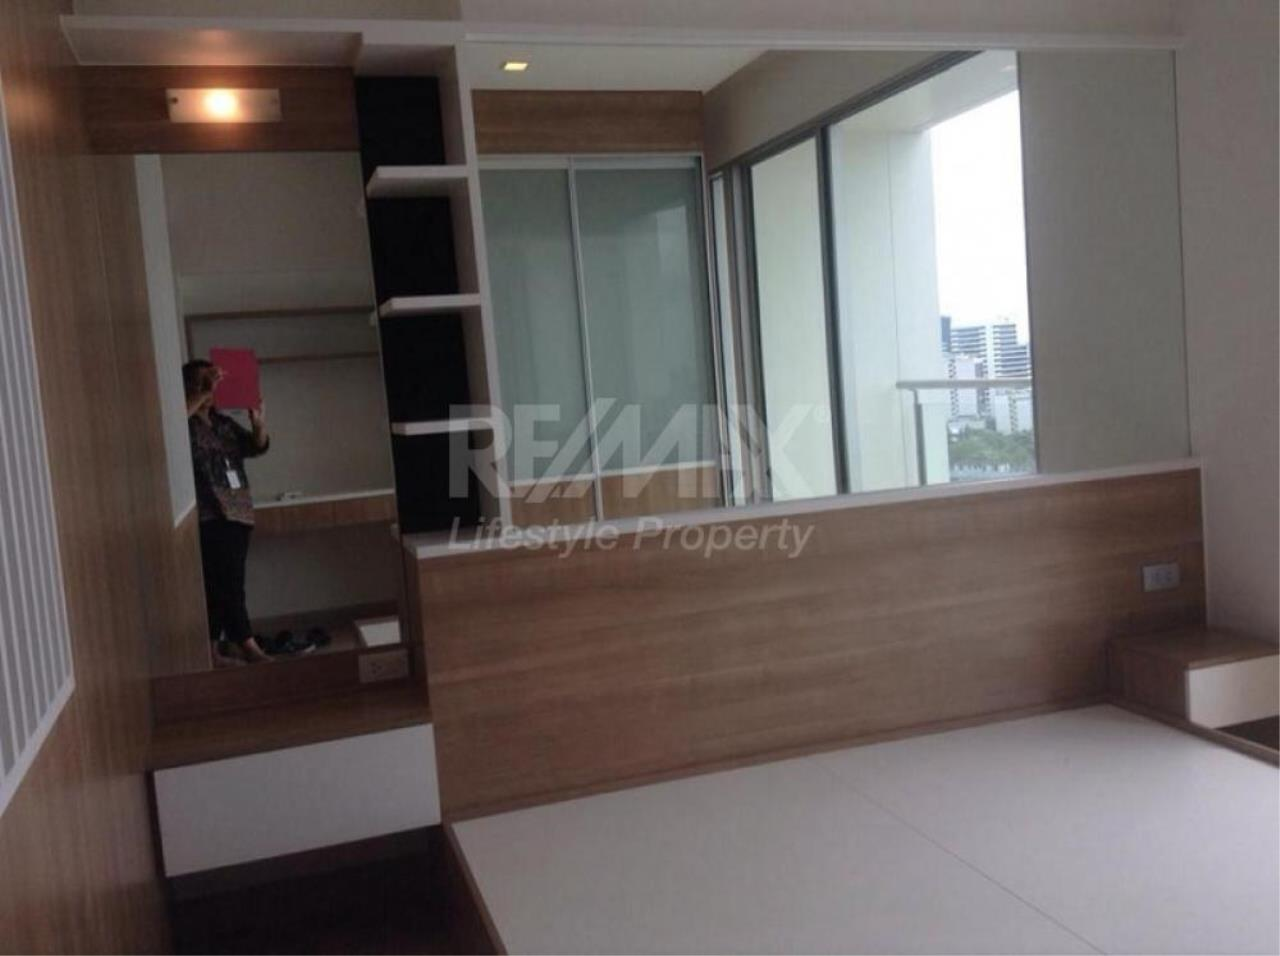 RE/MAX LifeStyle Property Agency's Sky Walk Condominium 1